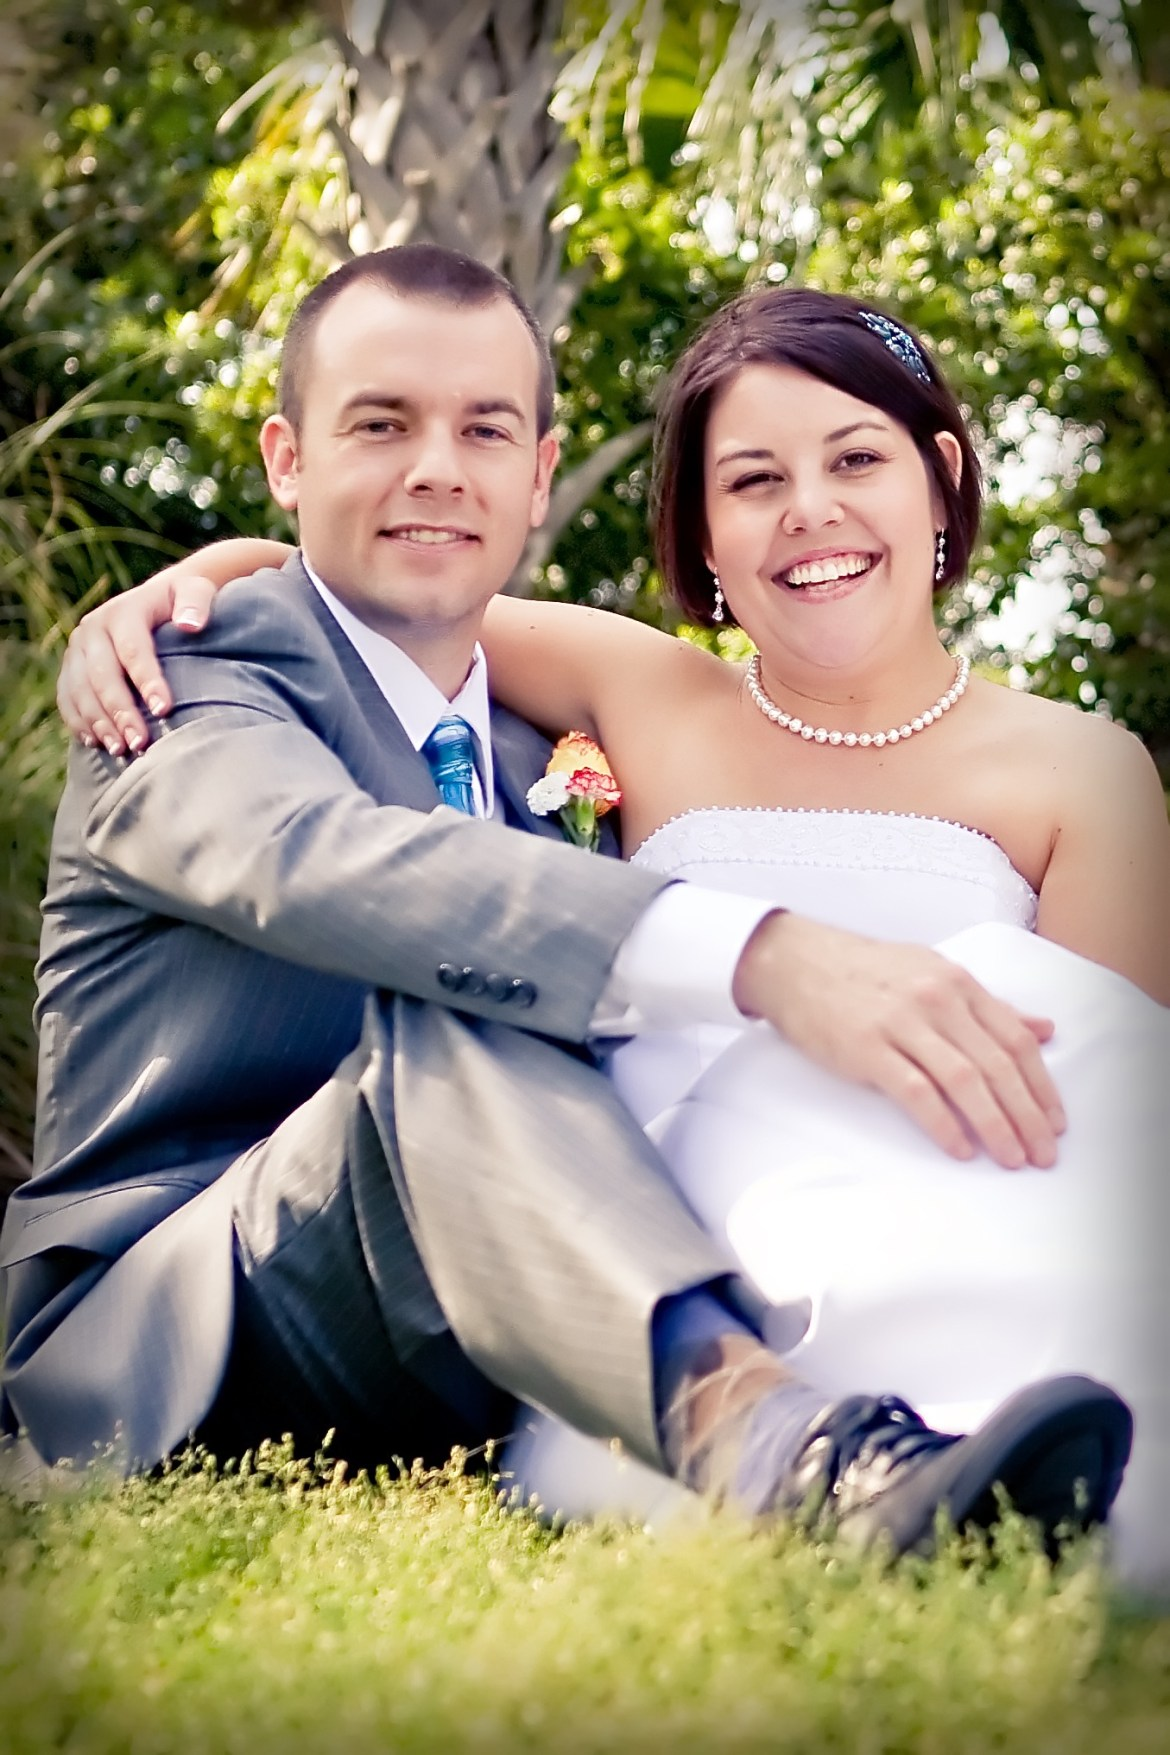 Wedding Portrait by Chi Photography